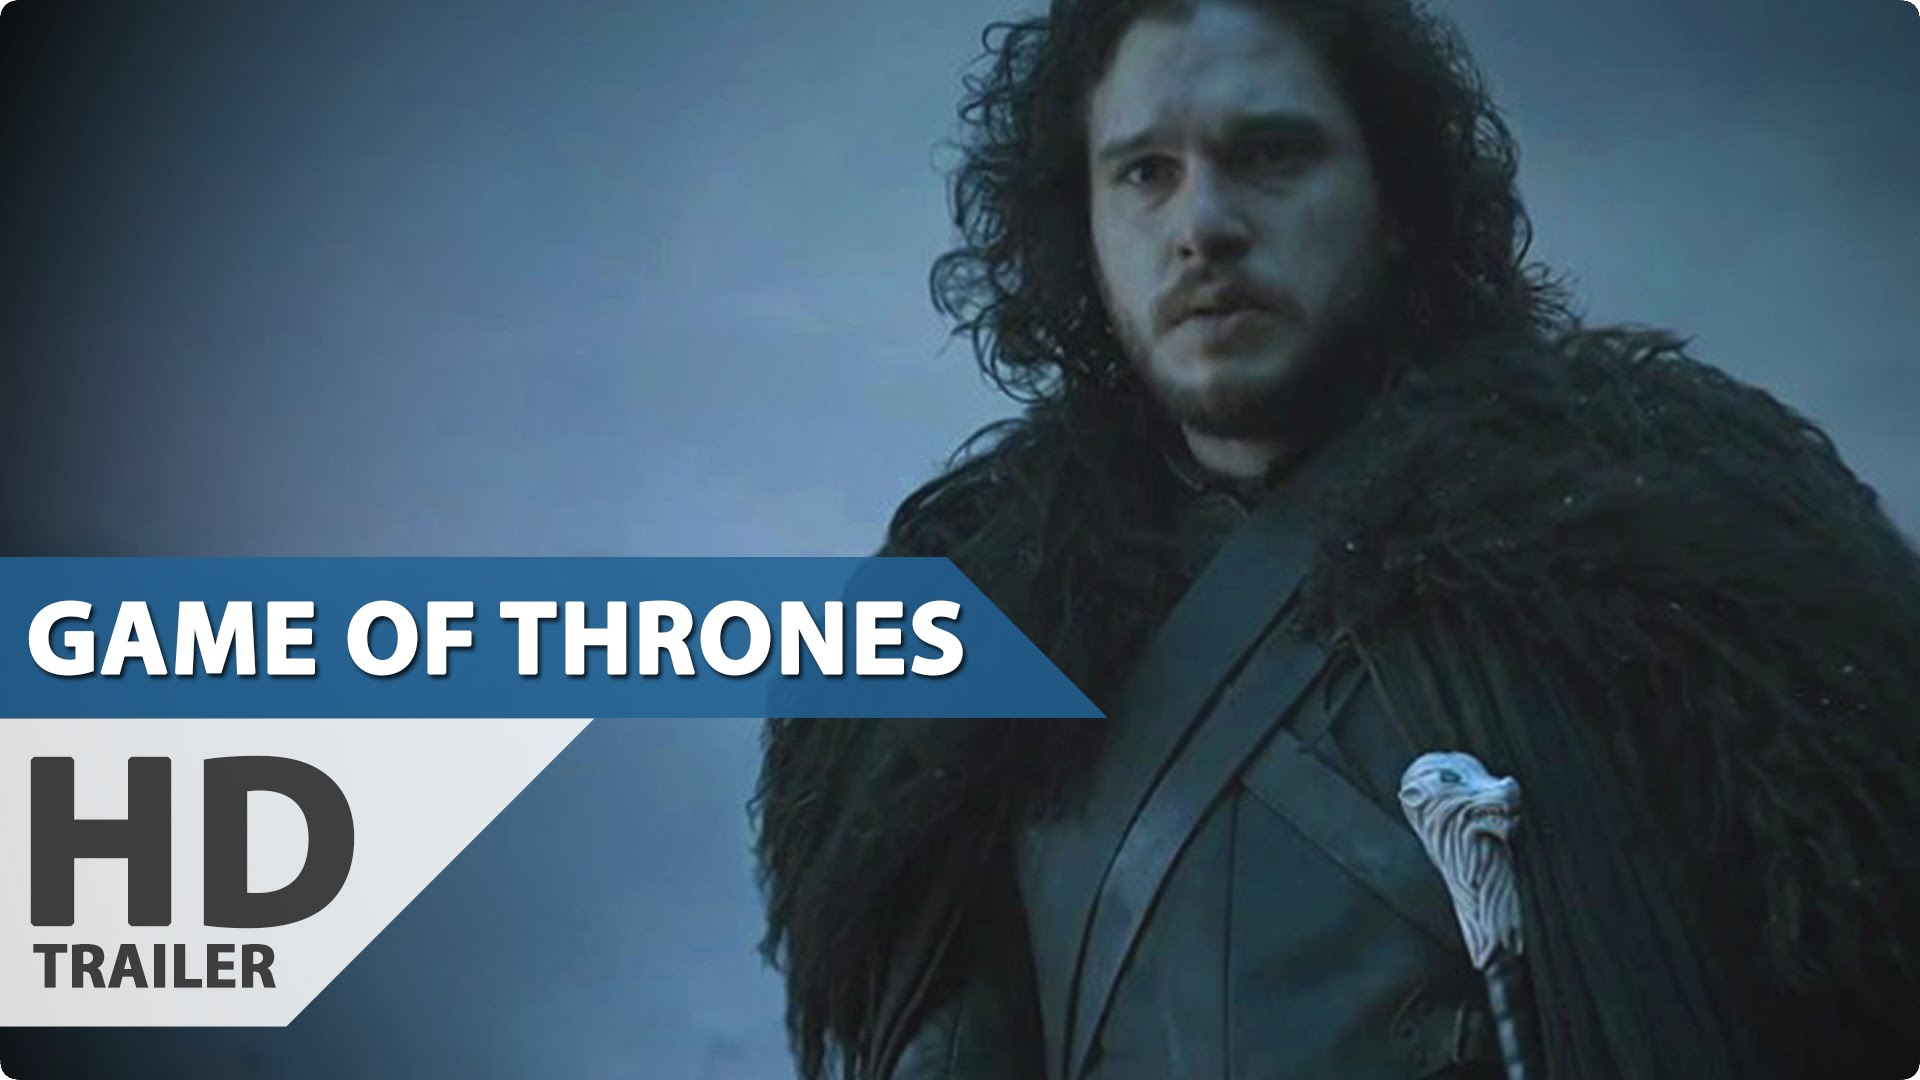 Forget Summer, Winter Is Here: new 'Game of Thrones' trailer